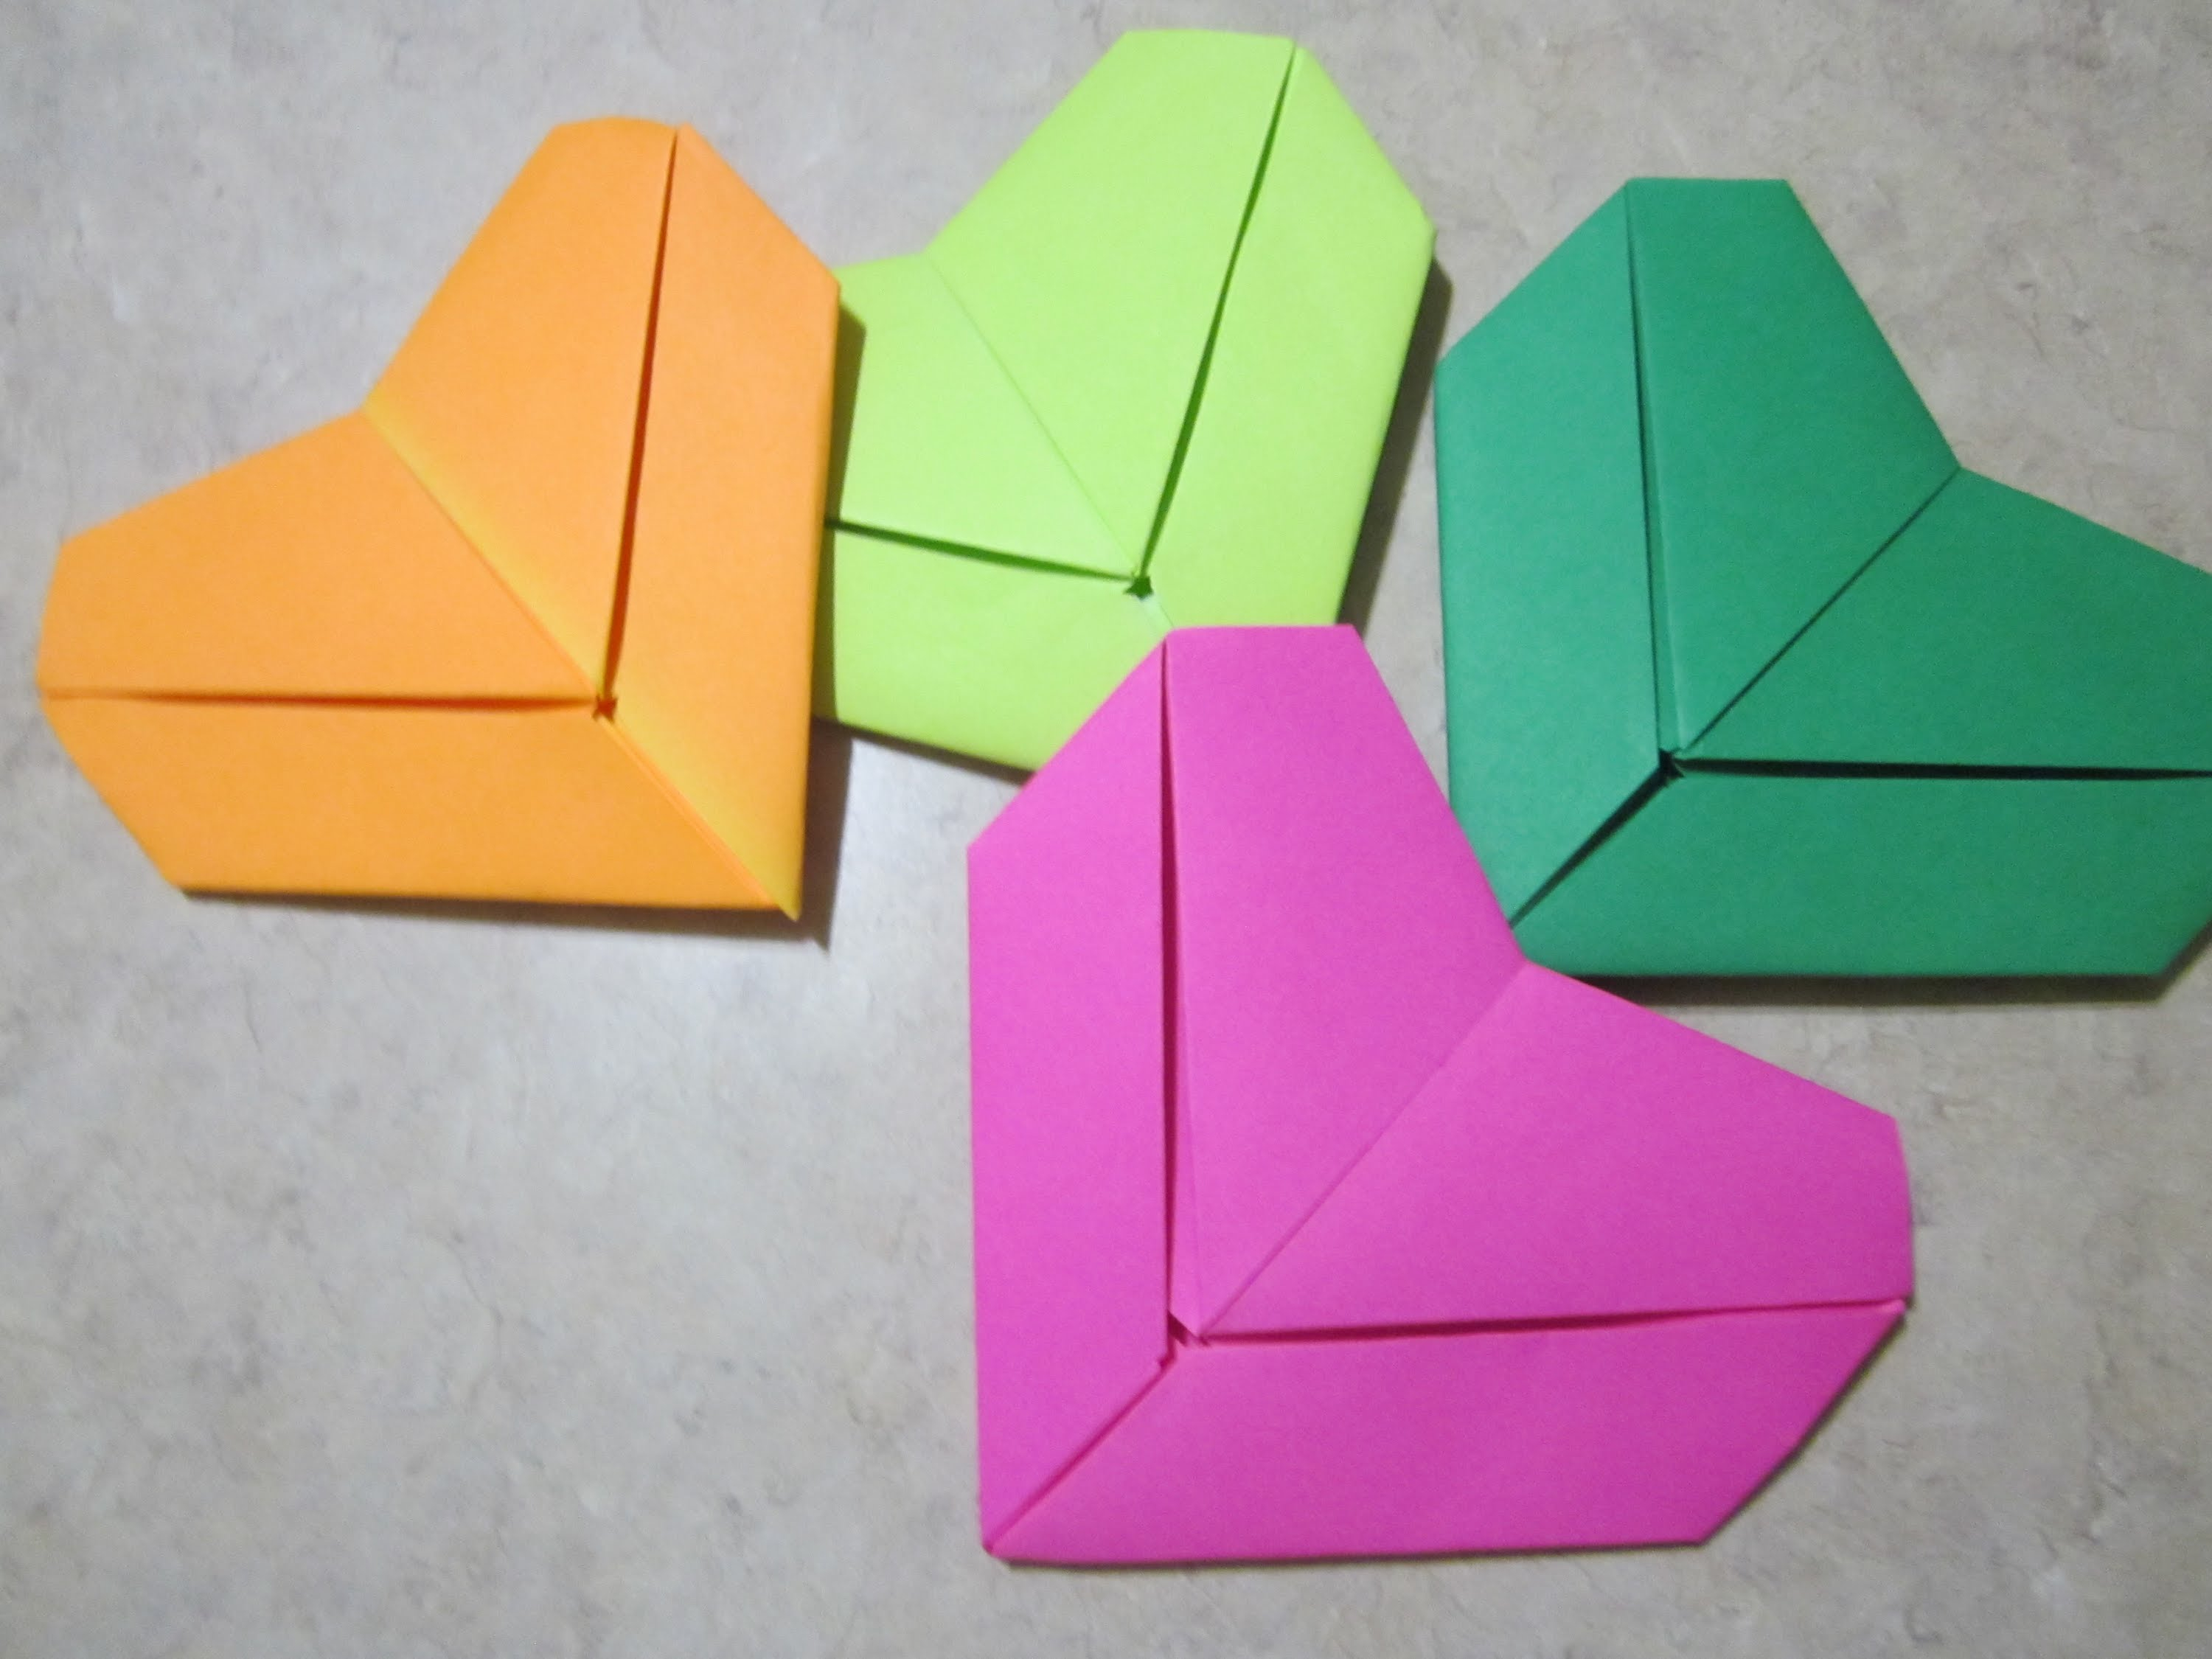 Envelope Origami Letters Origami Origami How To Letter Fold Heart Folding Letter Cage